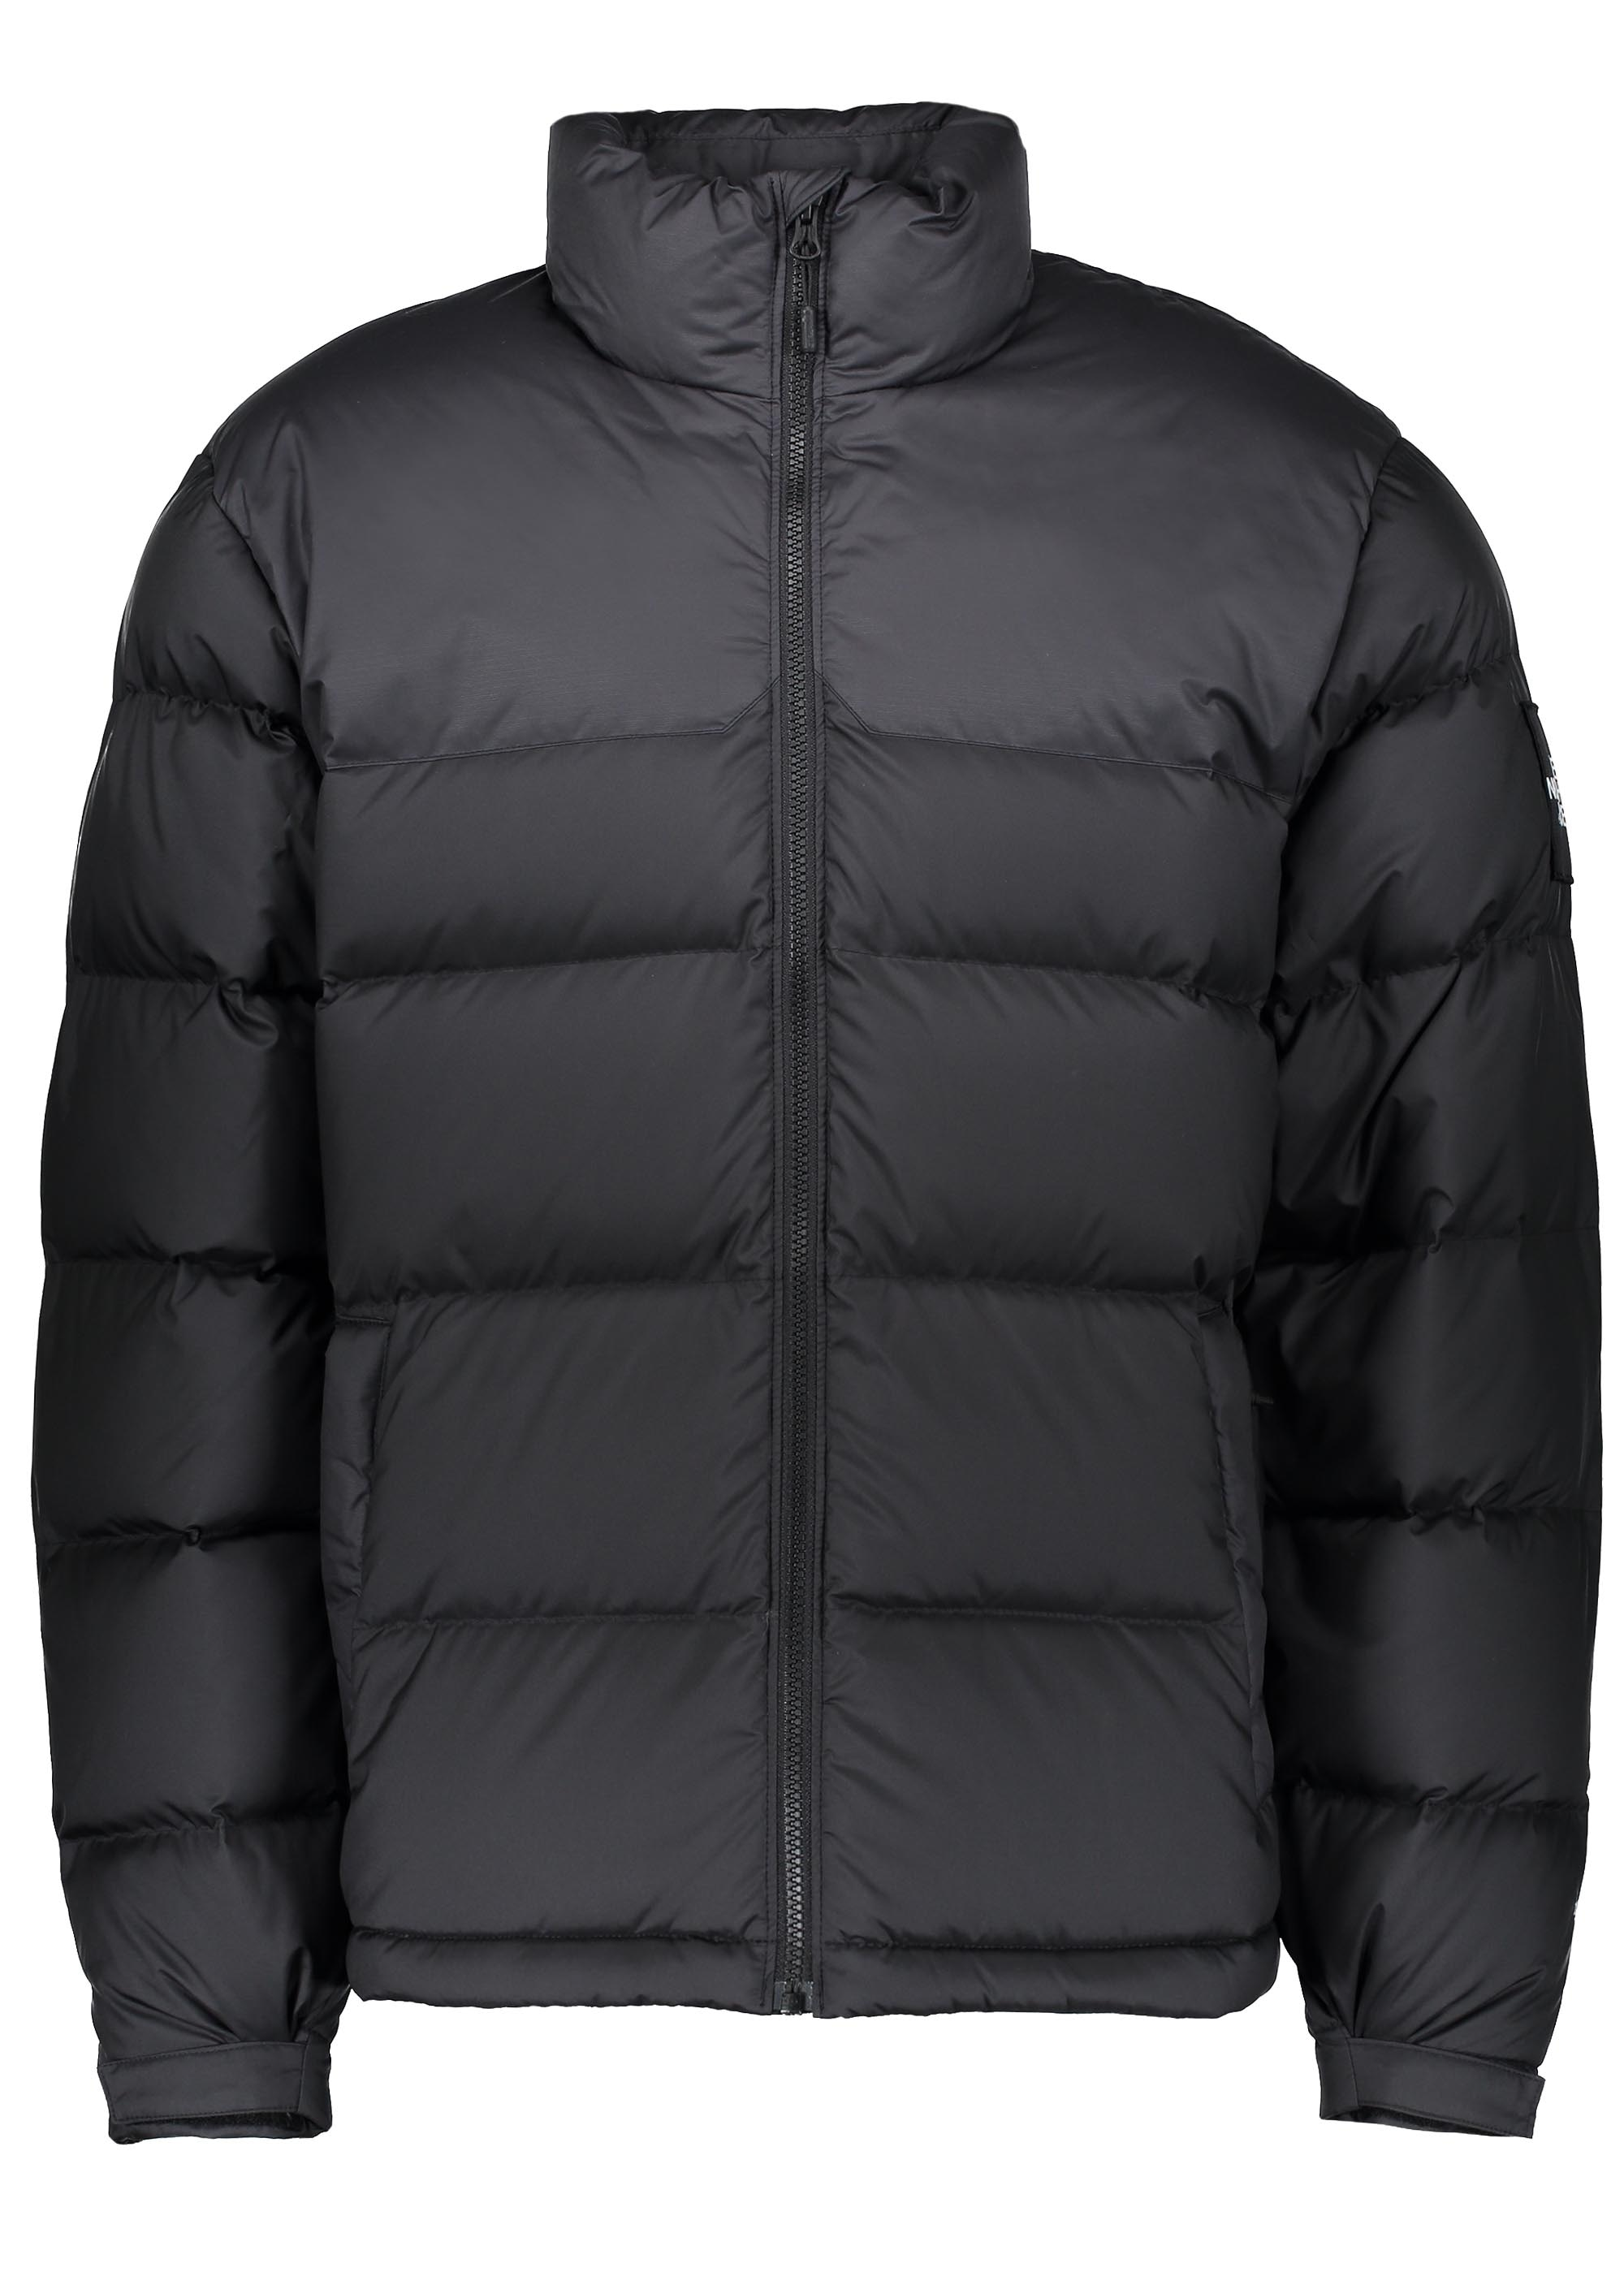 b612aaca7 The North Face 1992 Nuptse Jacket - Black